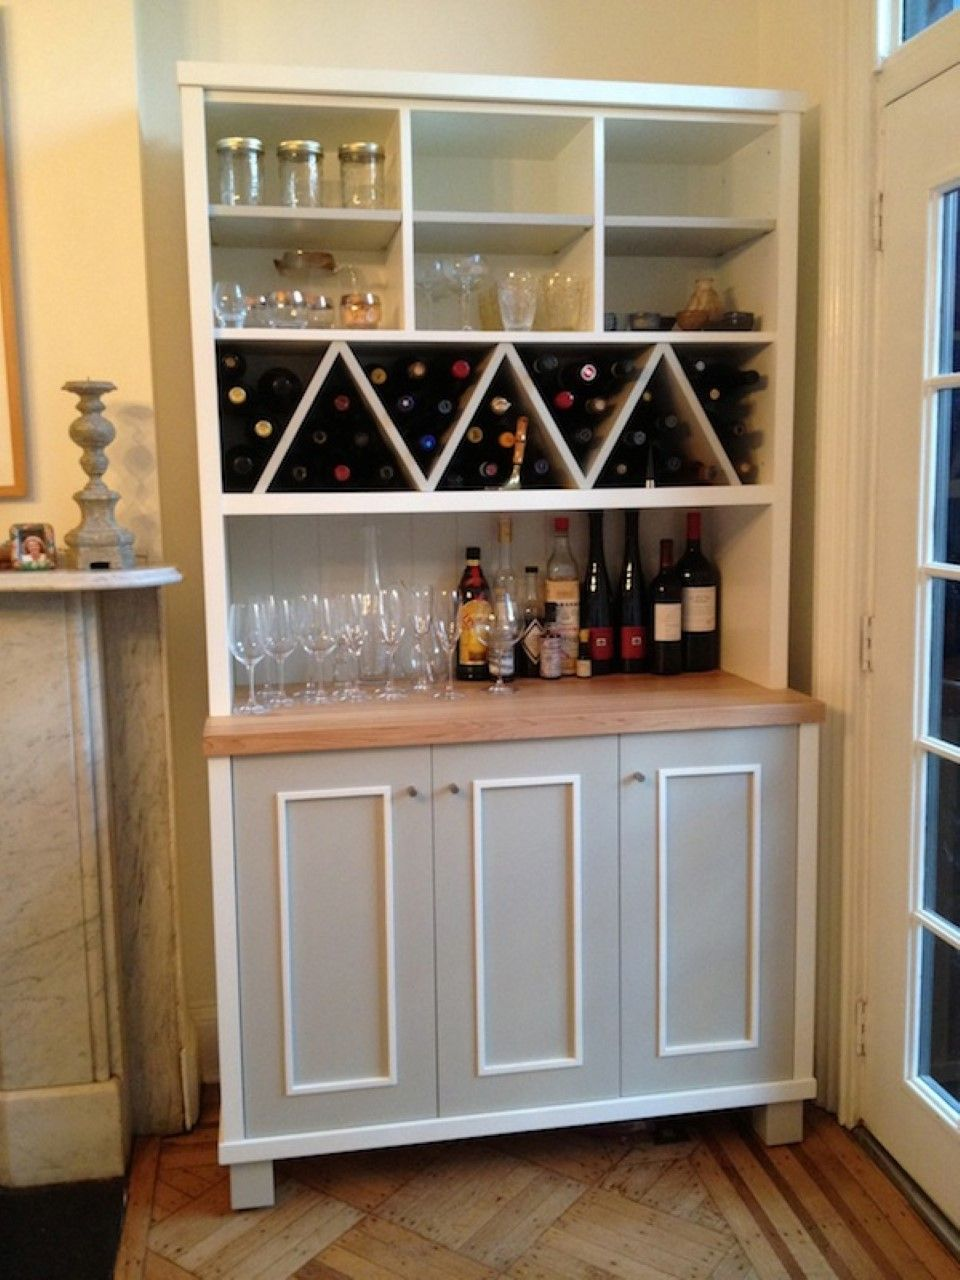 Built in wine racks for kitchen cabinets - Zigzag Shaped Wine Racks With Multi Purposes Kitchen Wall Storage